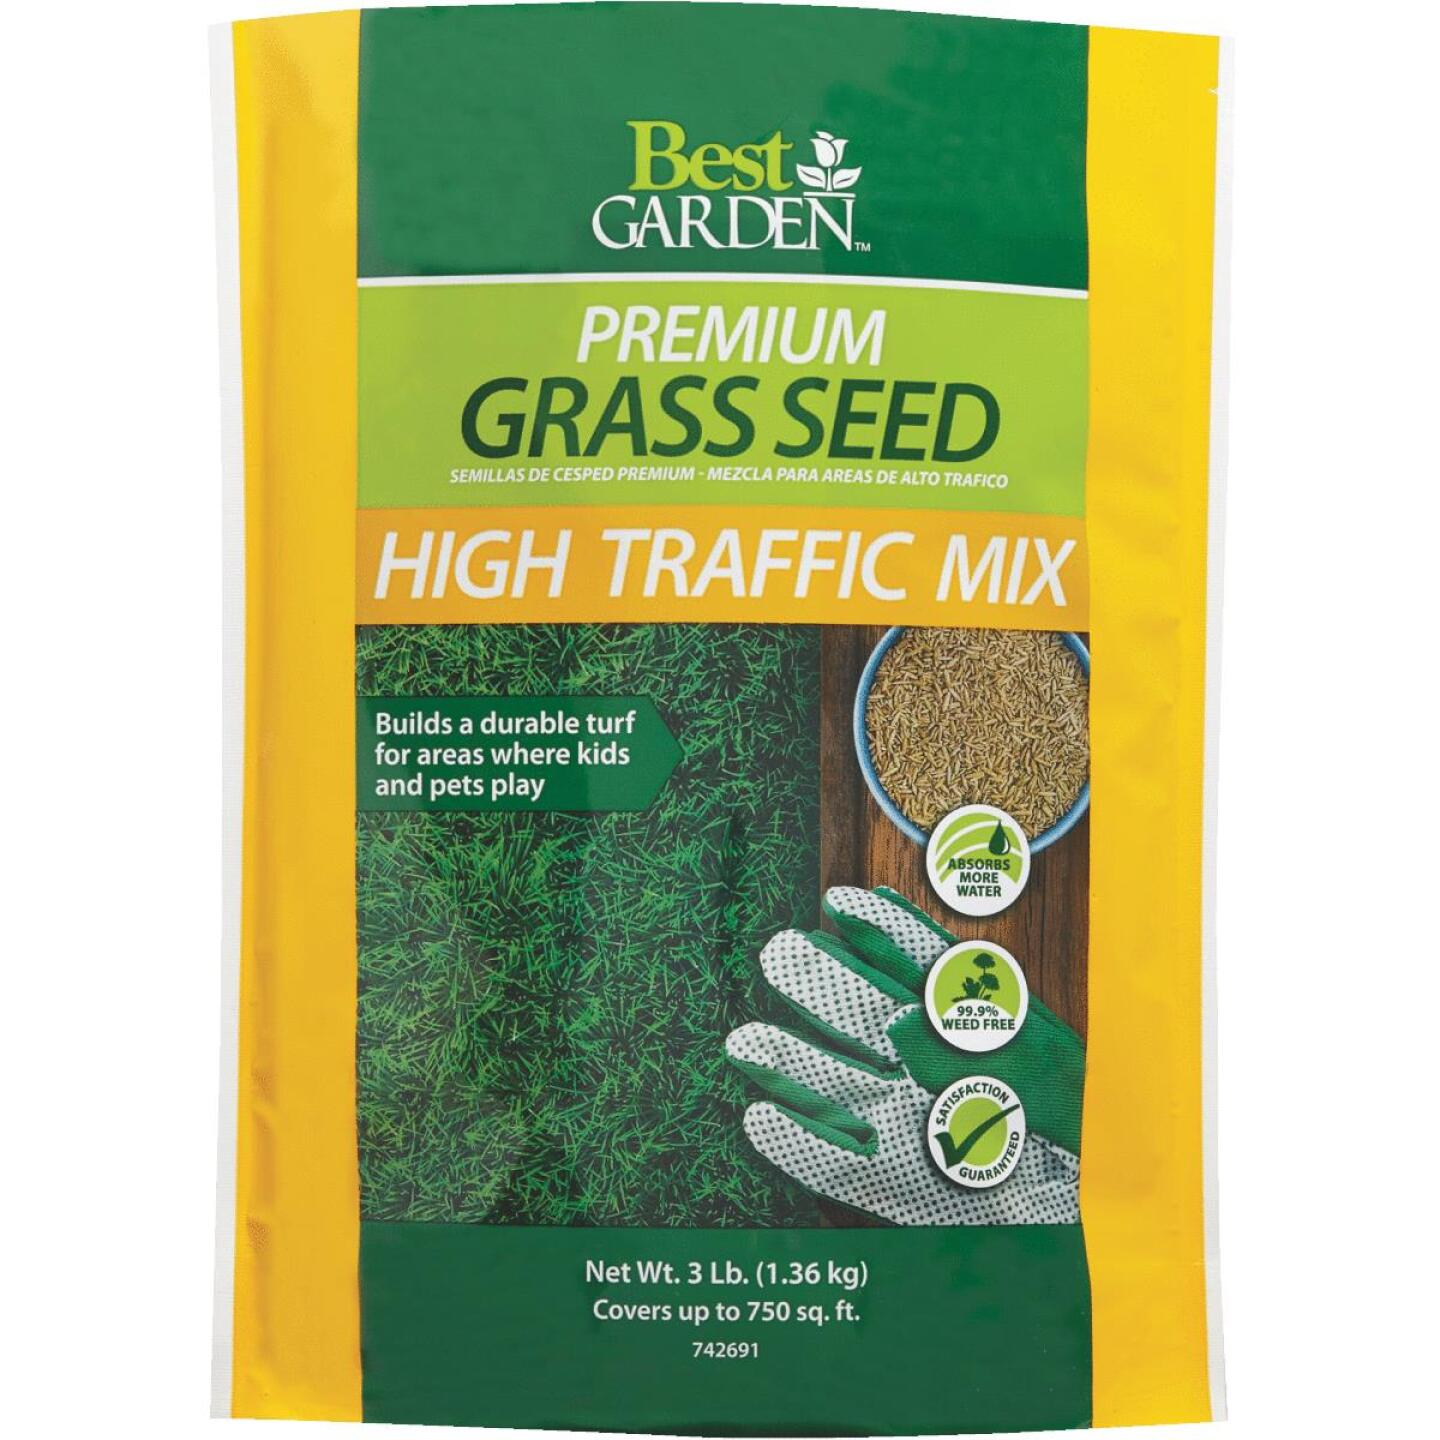 Best Garden 3 Lb. 900 Sq. Ft. Coverage High Traffic Grass Seed Image 1